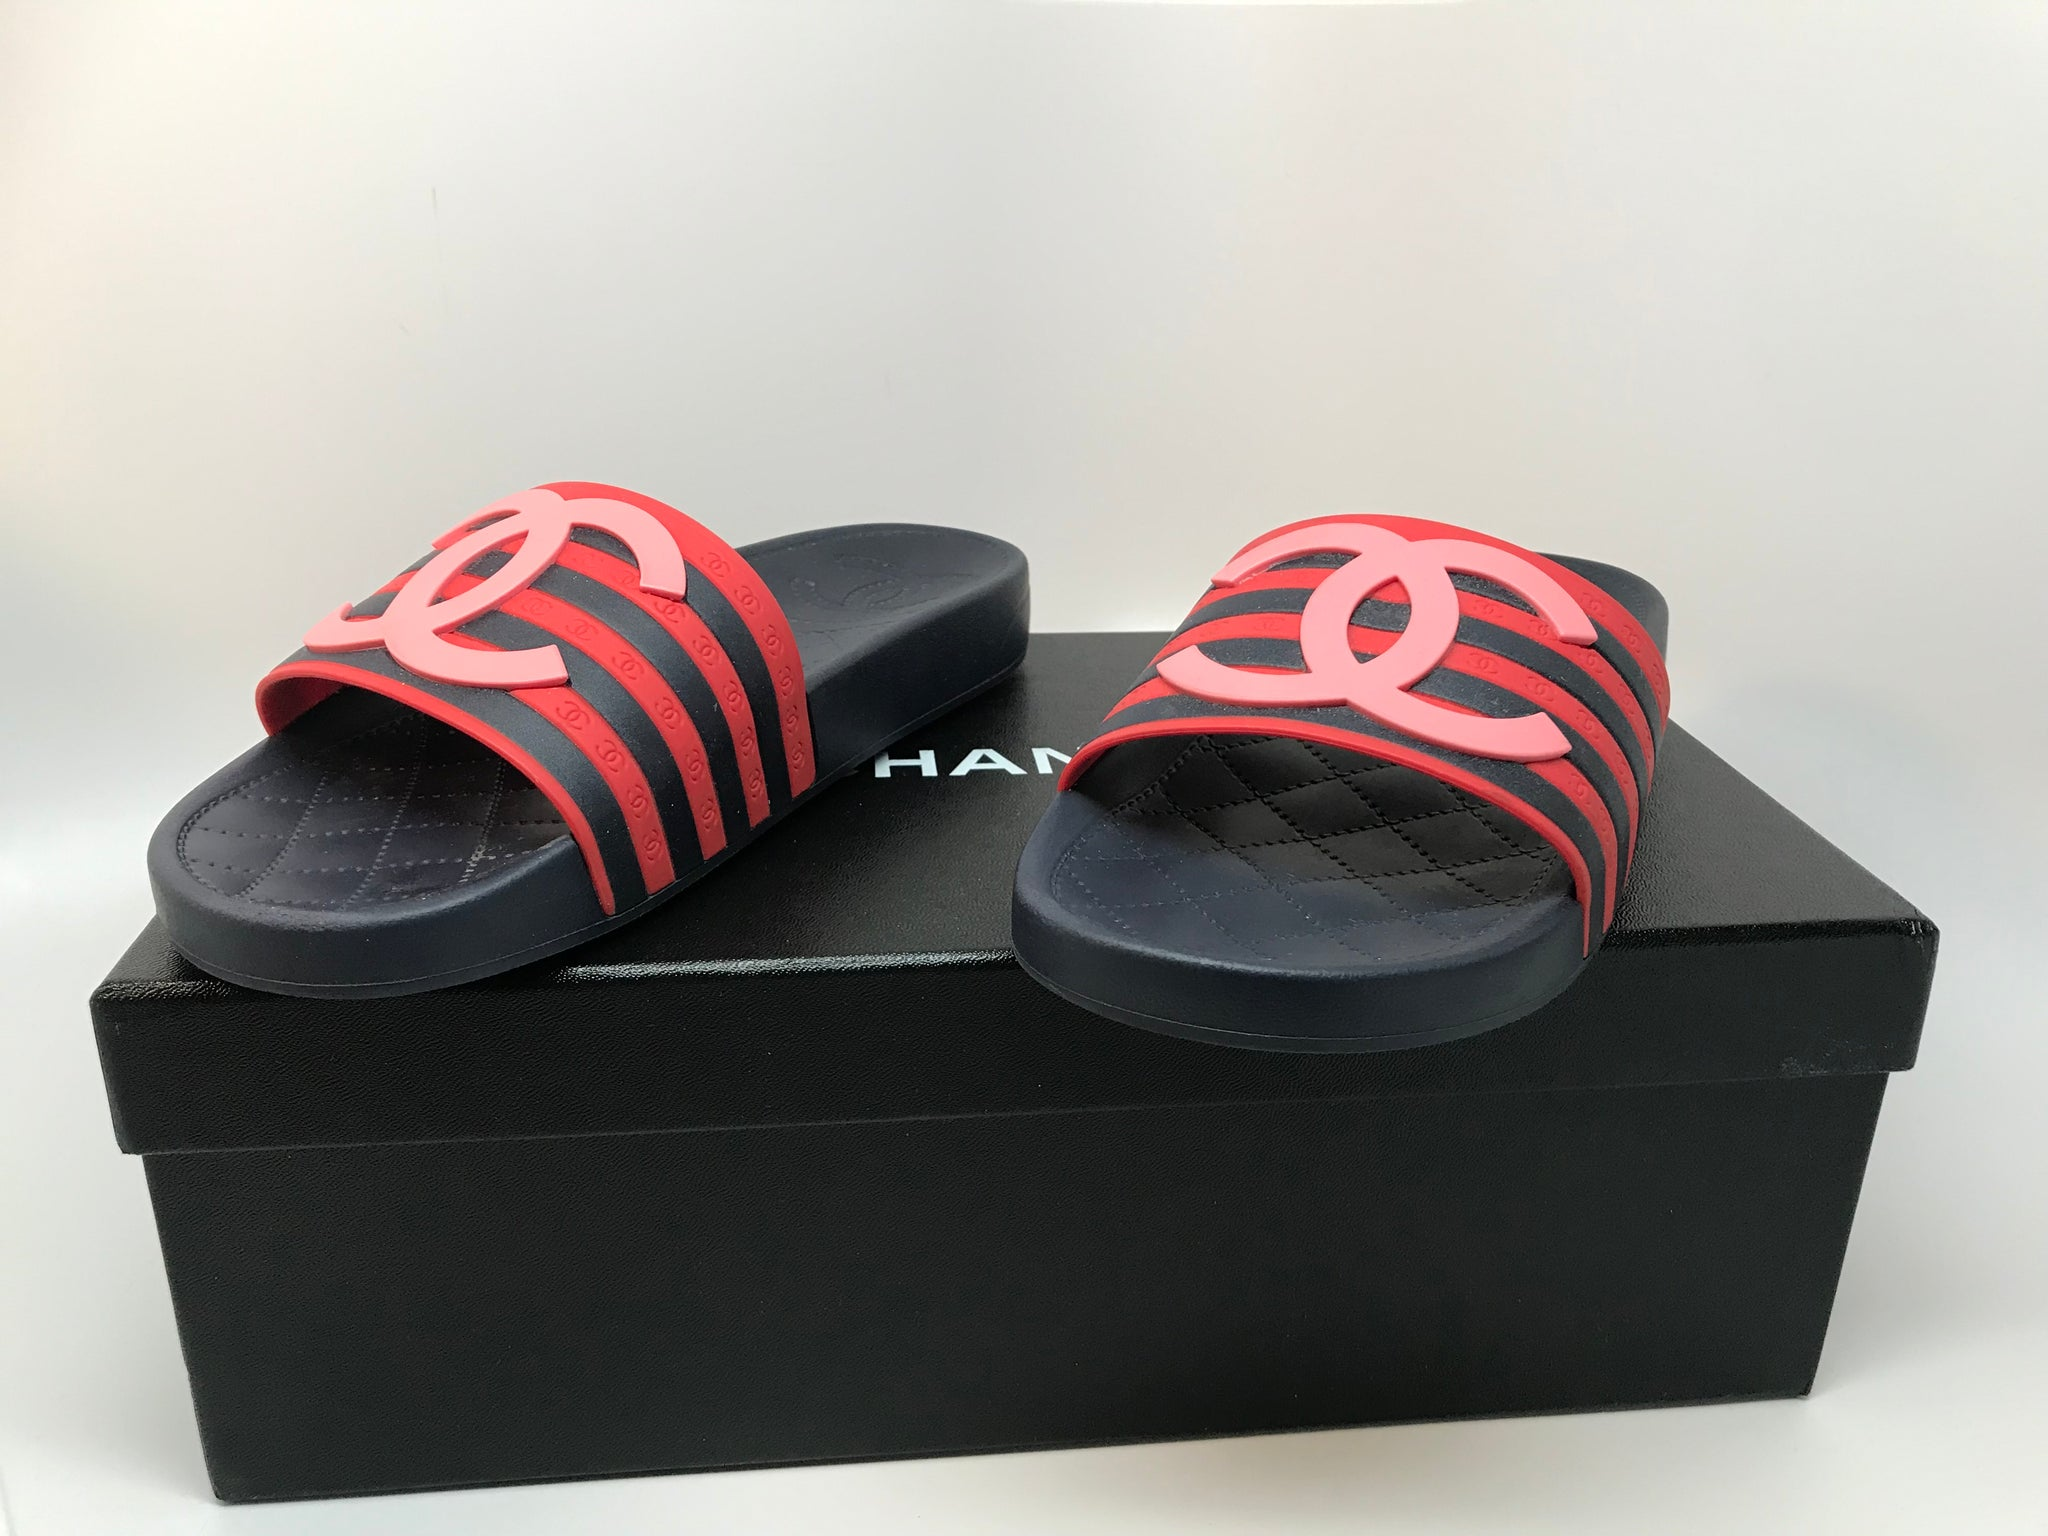 CHANEL RED/NAVY MULES SANDAL - SIZE 36